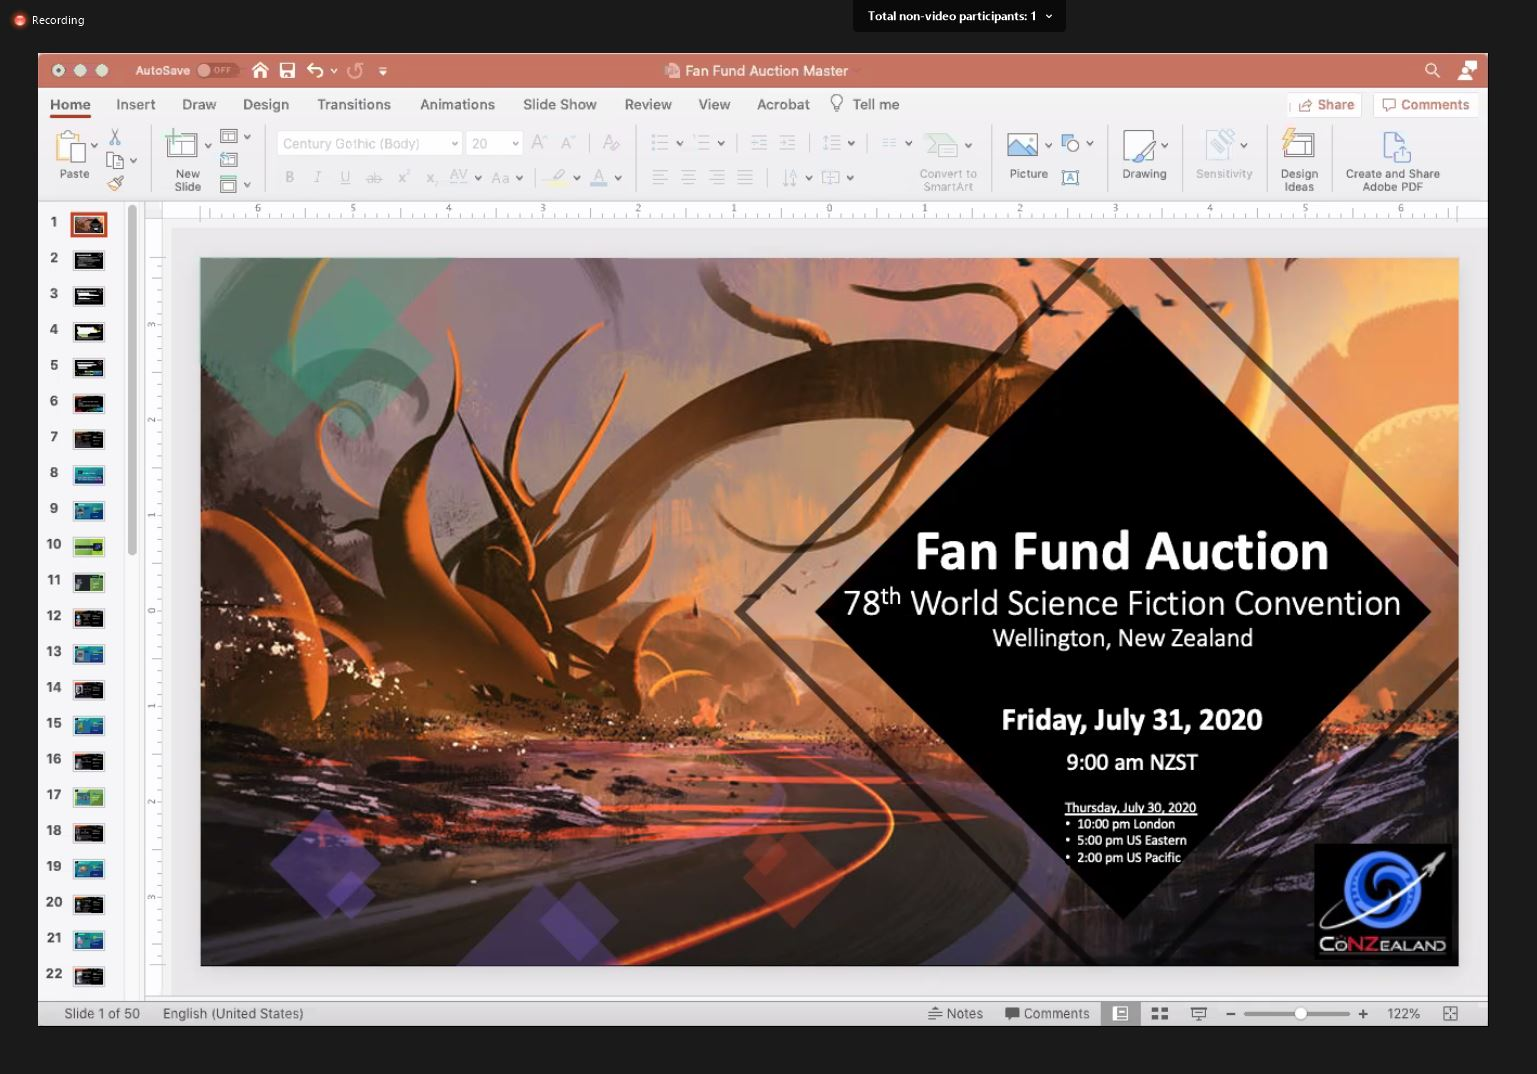 Powerpoint window with large picture and text informing about Fan Funds Auction.